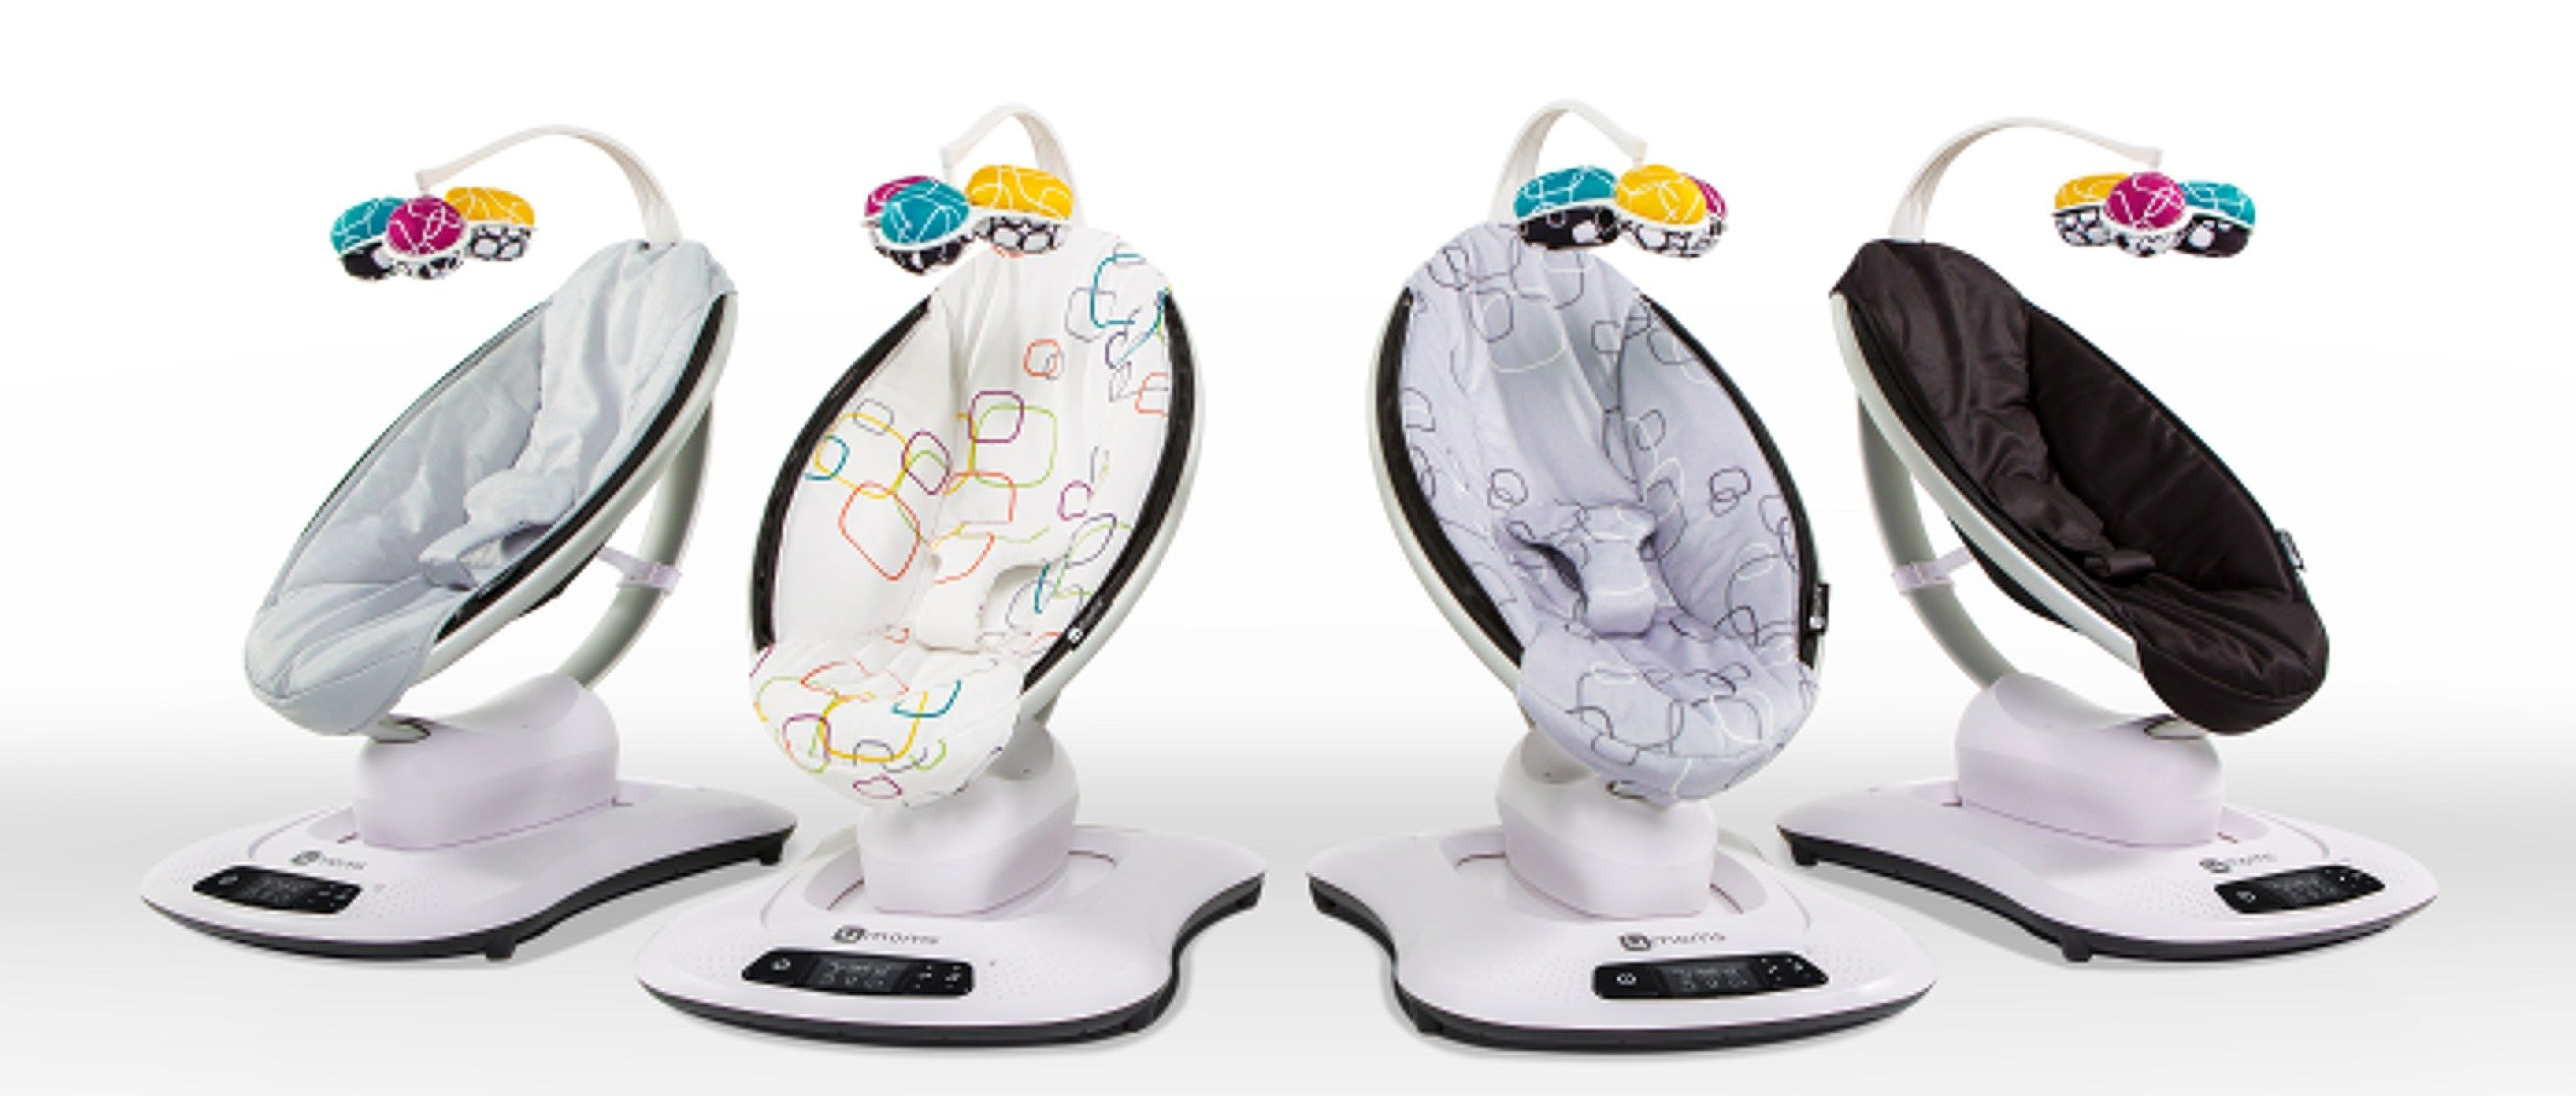 Product Review 4Moms MamaRoo Baby Swing